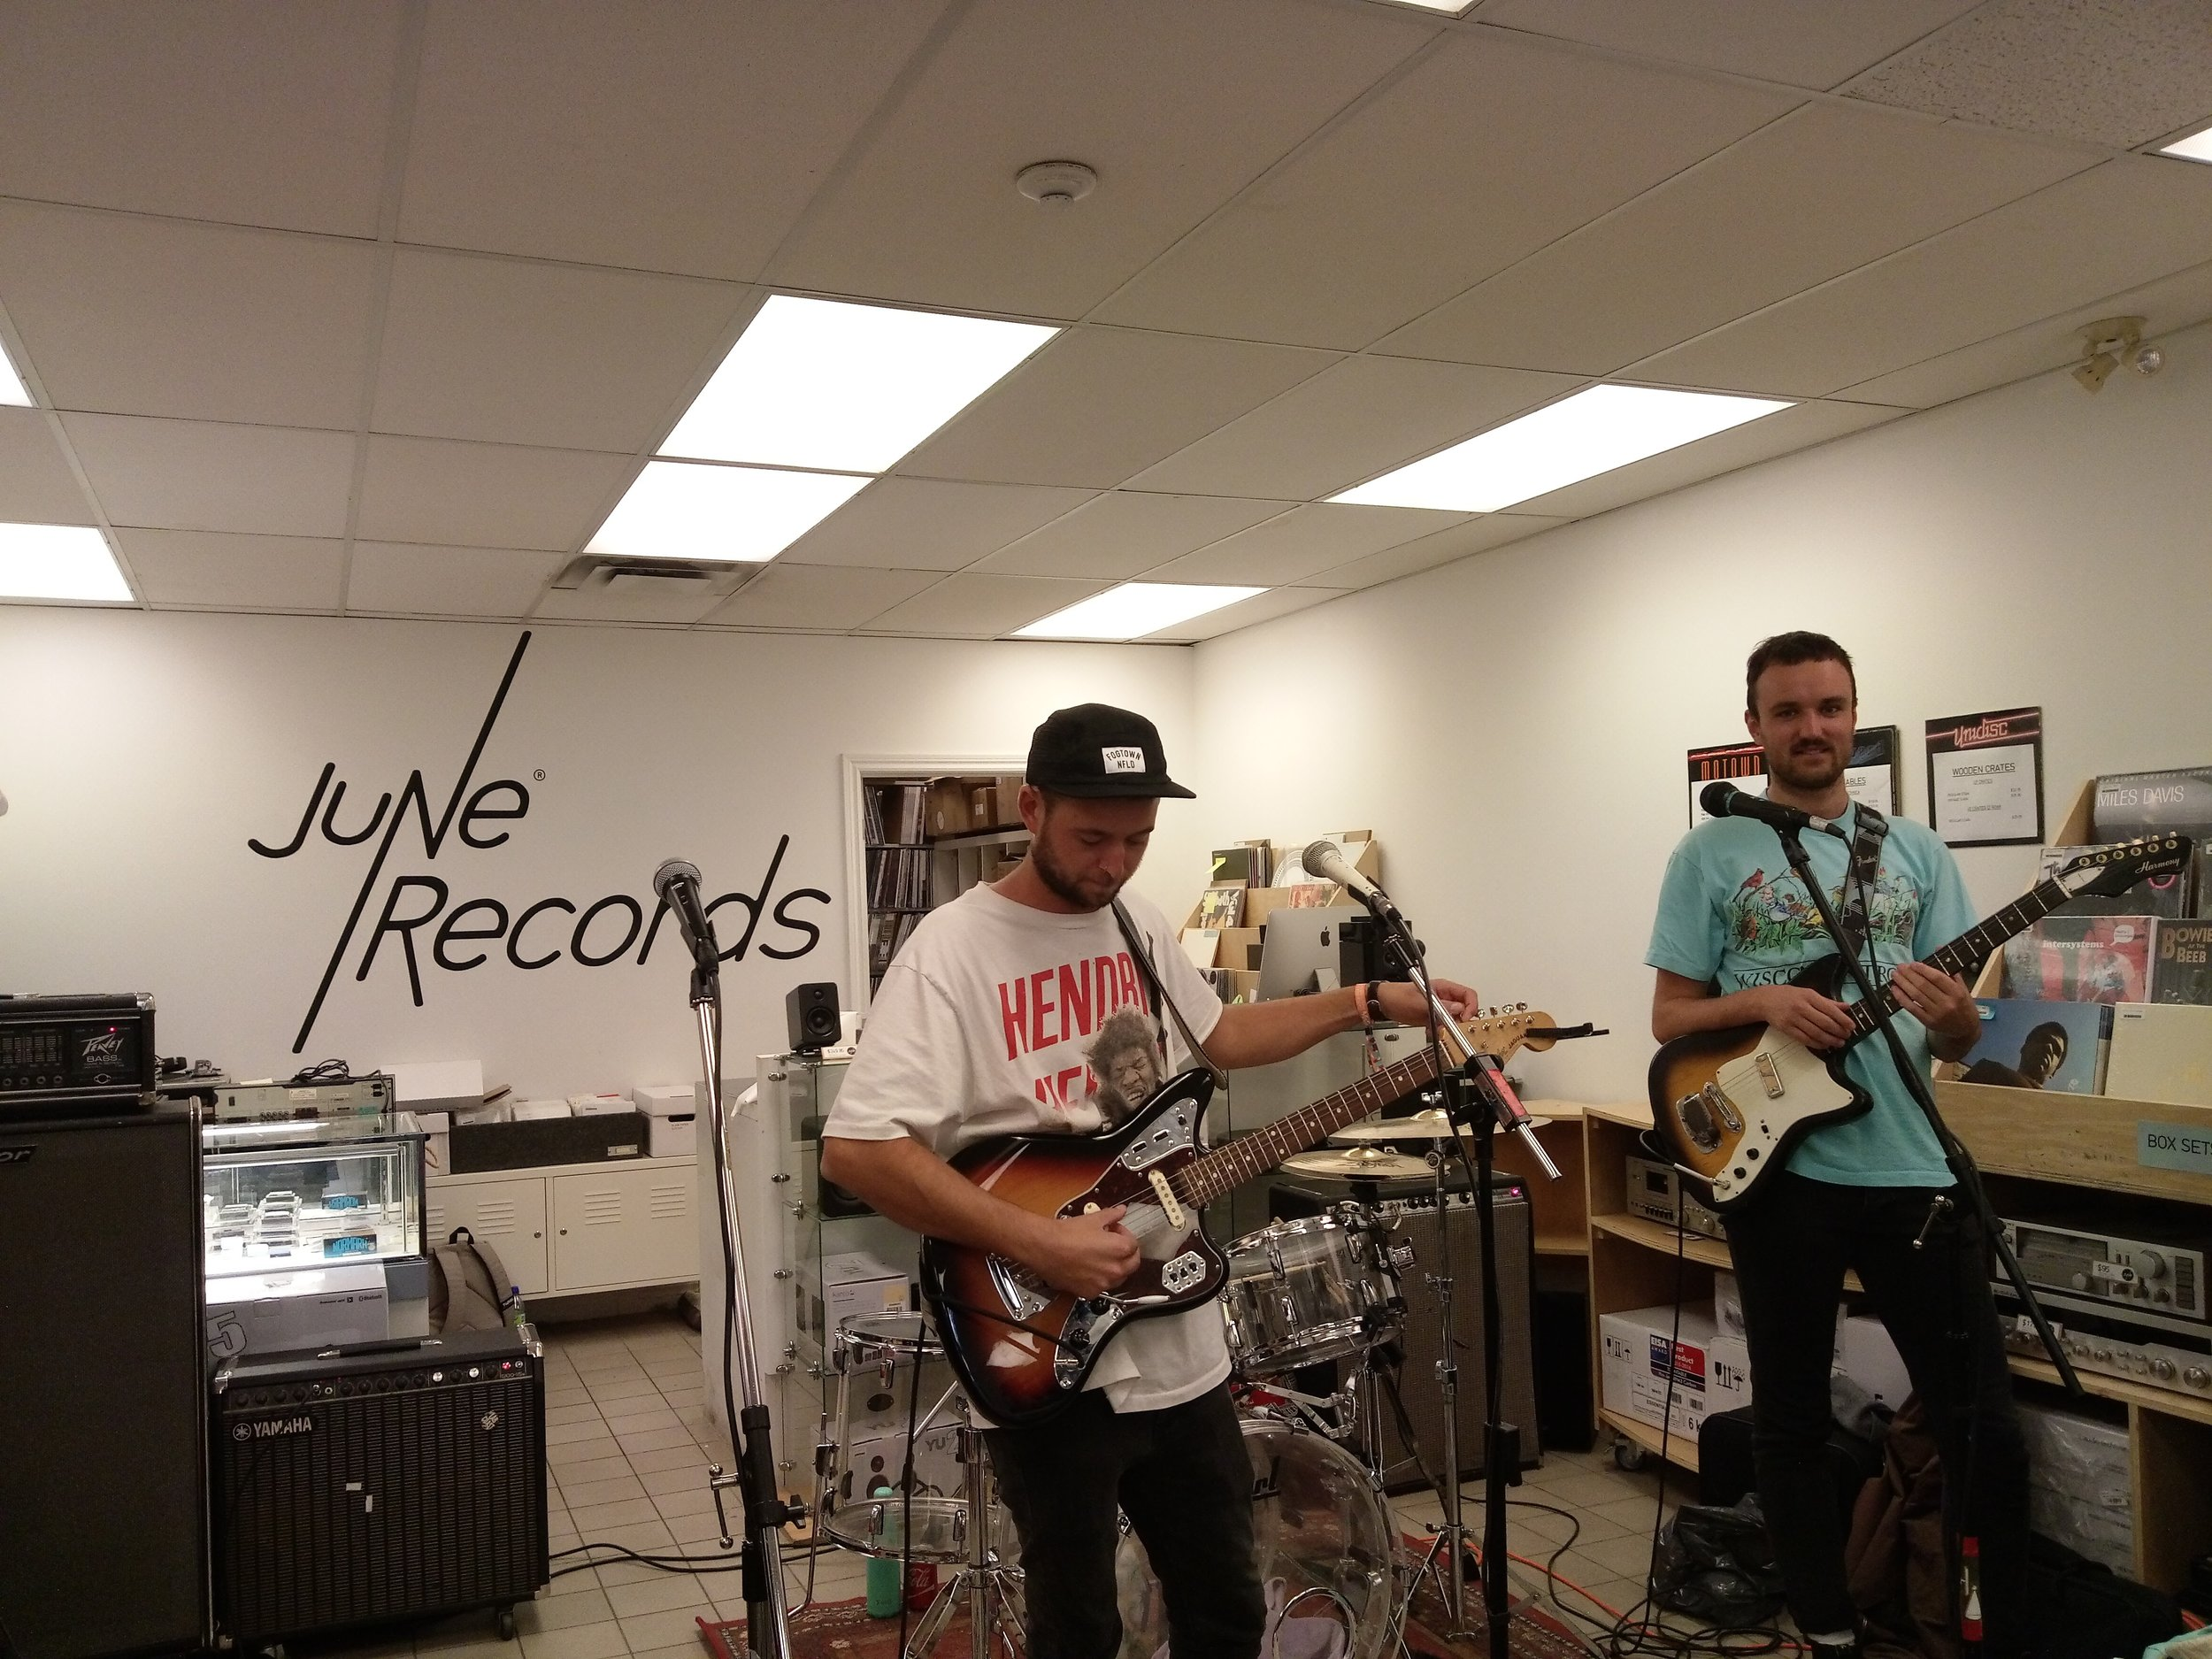 Played an instore at Toronto's June Records with Calgary's Lab Coast. Some of them also play with our hero Chad Van Gaalen!